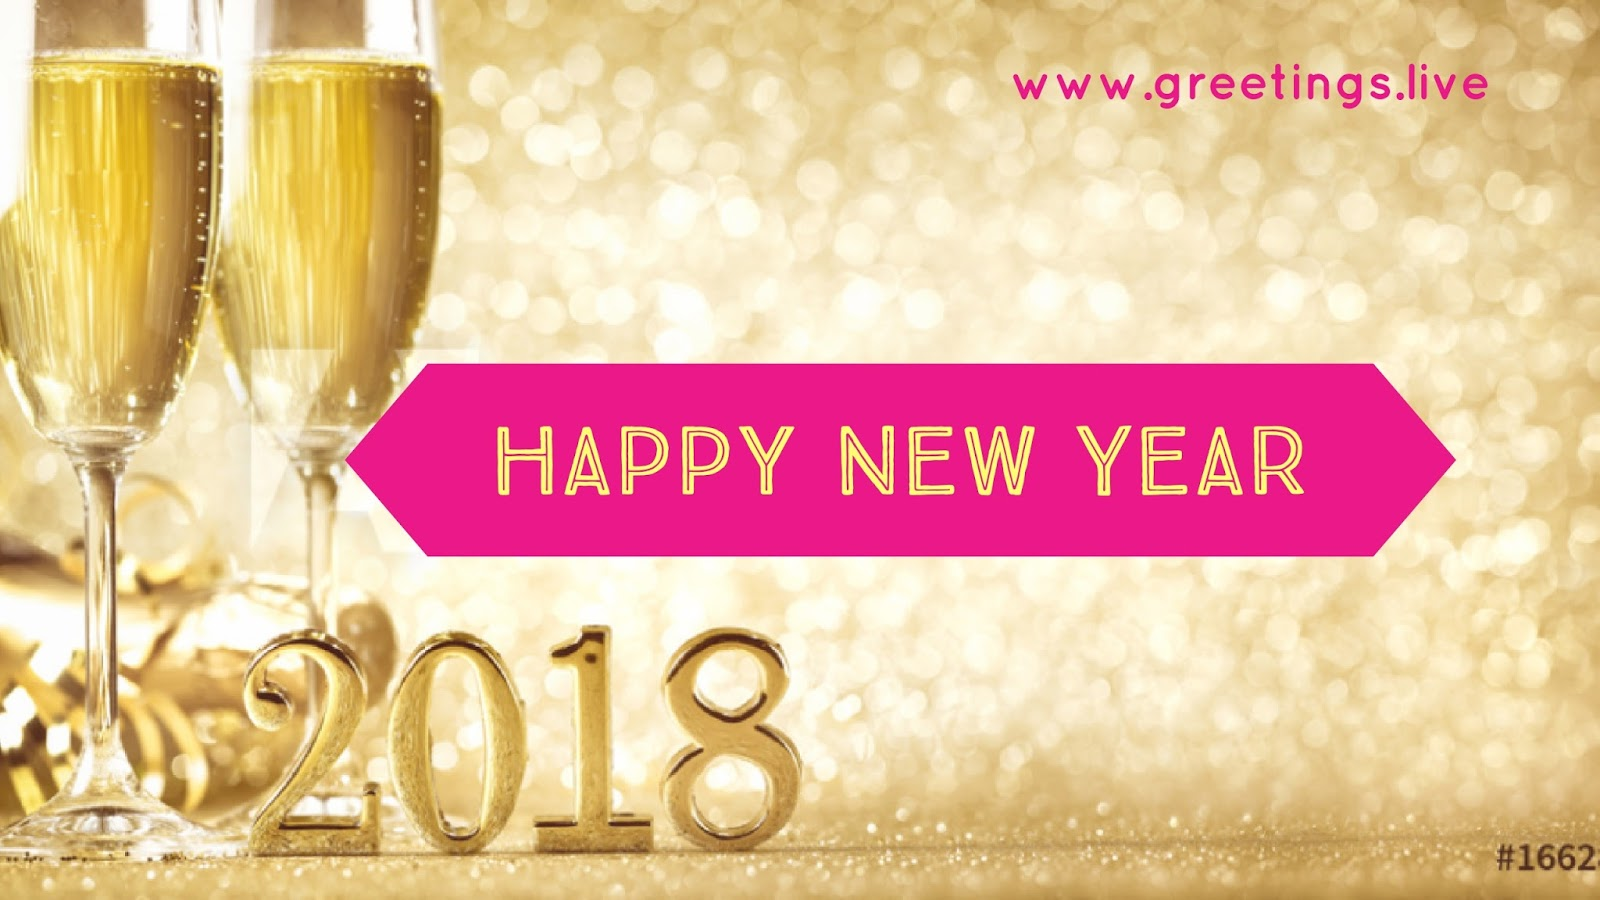 2018 New Year Wishes Greetings Different Types Of Greetings For